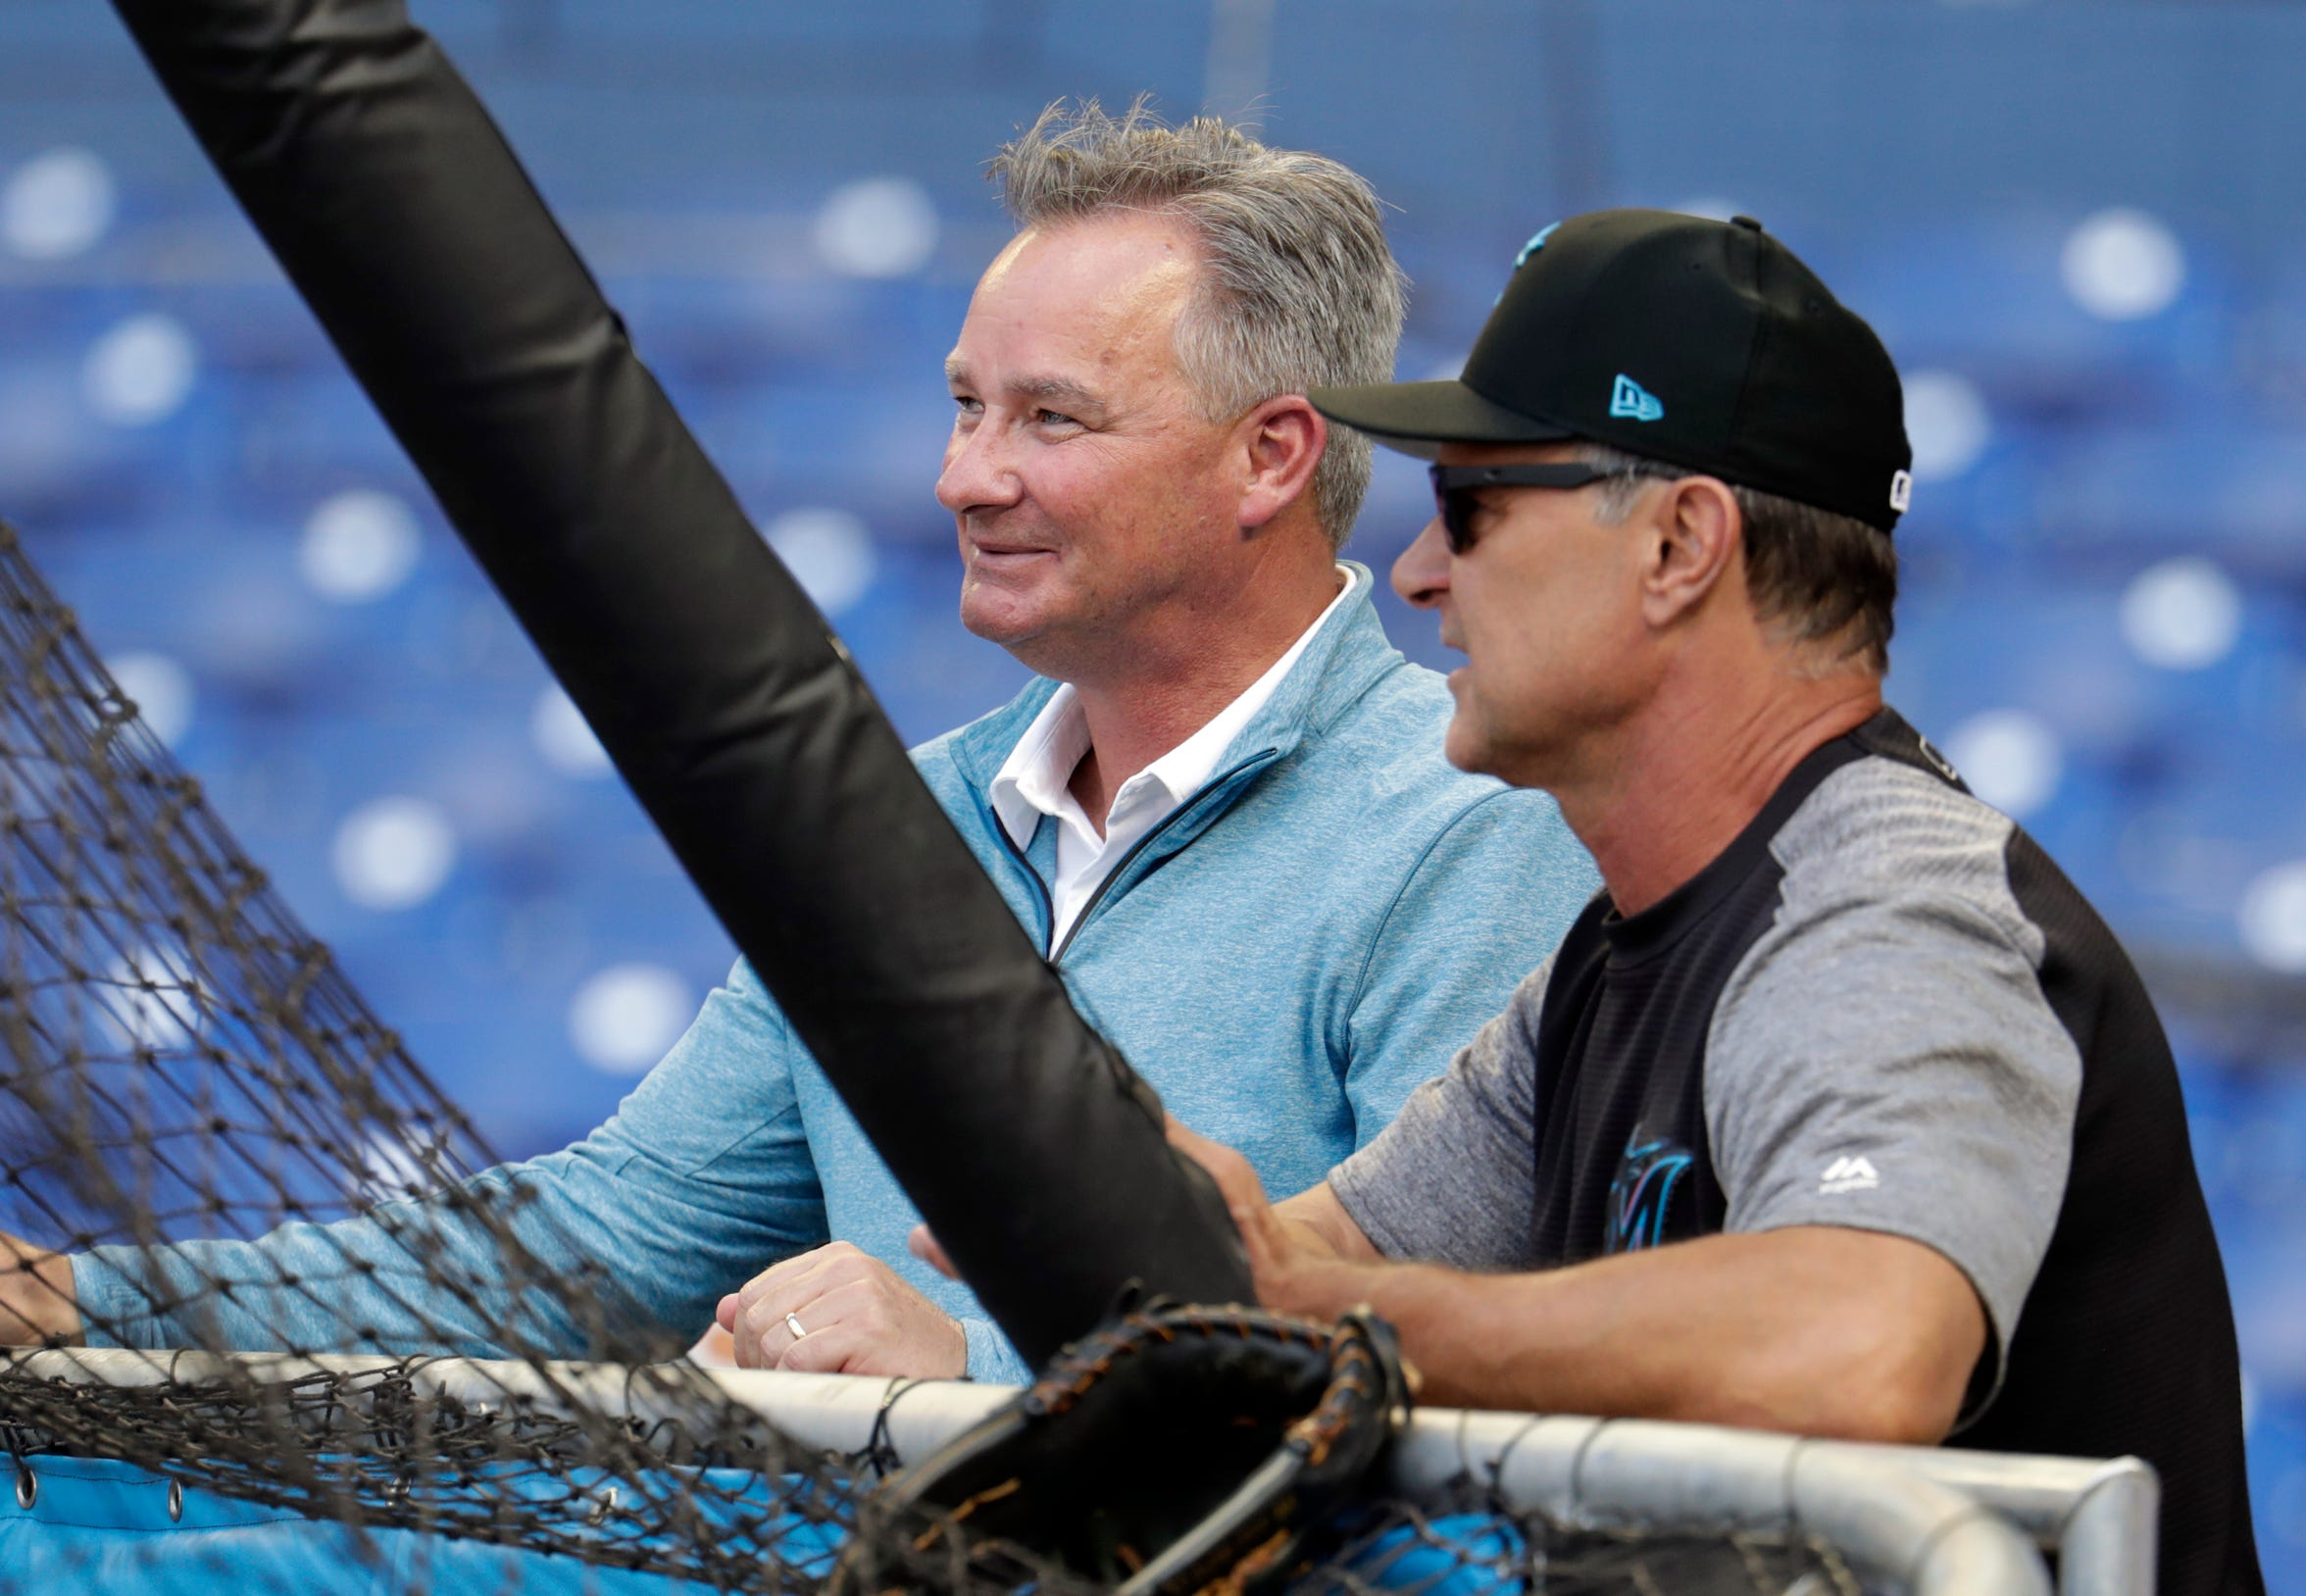 Miami Marlins' Gary Denbo, vice president for player development and scouting, left, stands with manager Don Mattingly before a baseball game against the San Francisco Giants, Wednesday, May 29, 2019, in Miami. (AP Photo/Lynne Sladky)